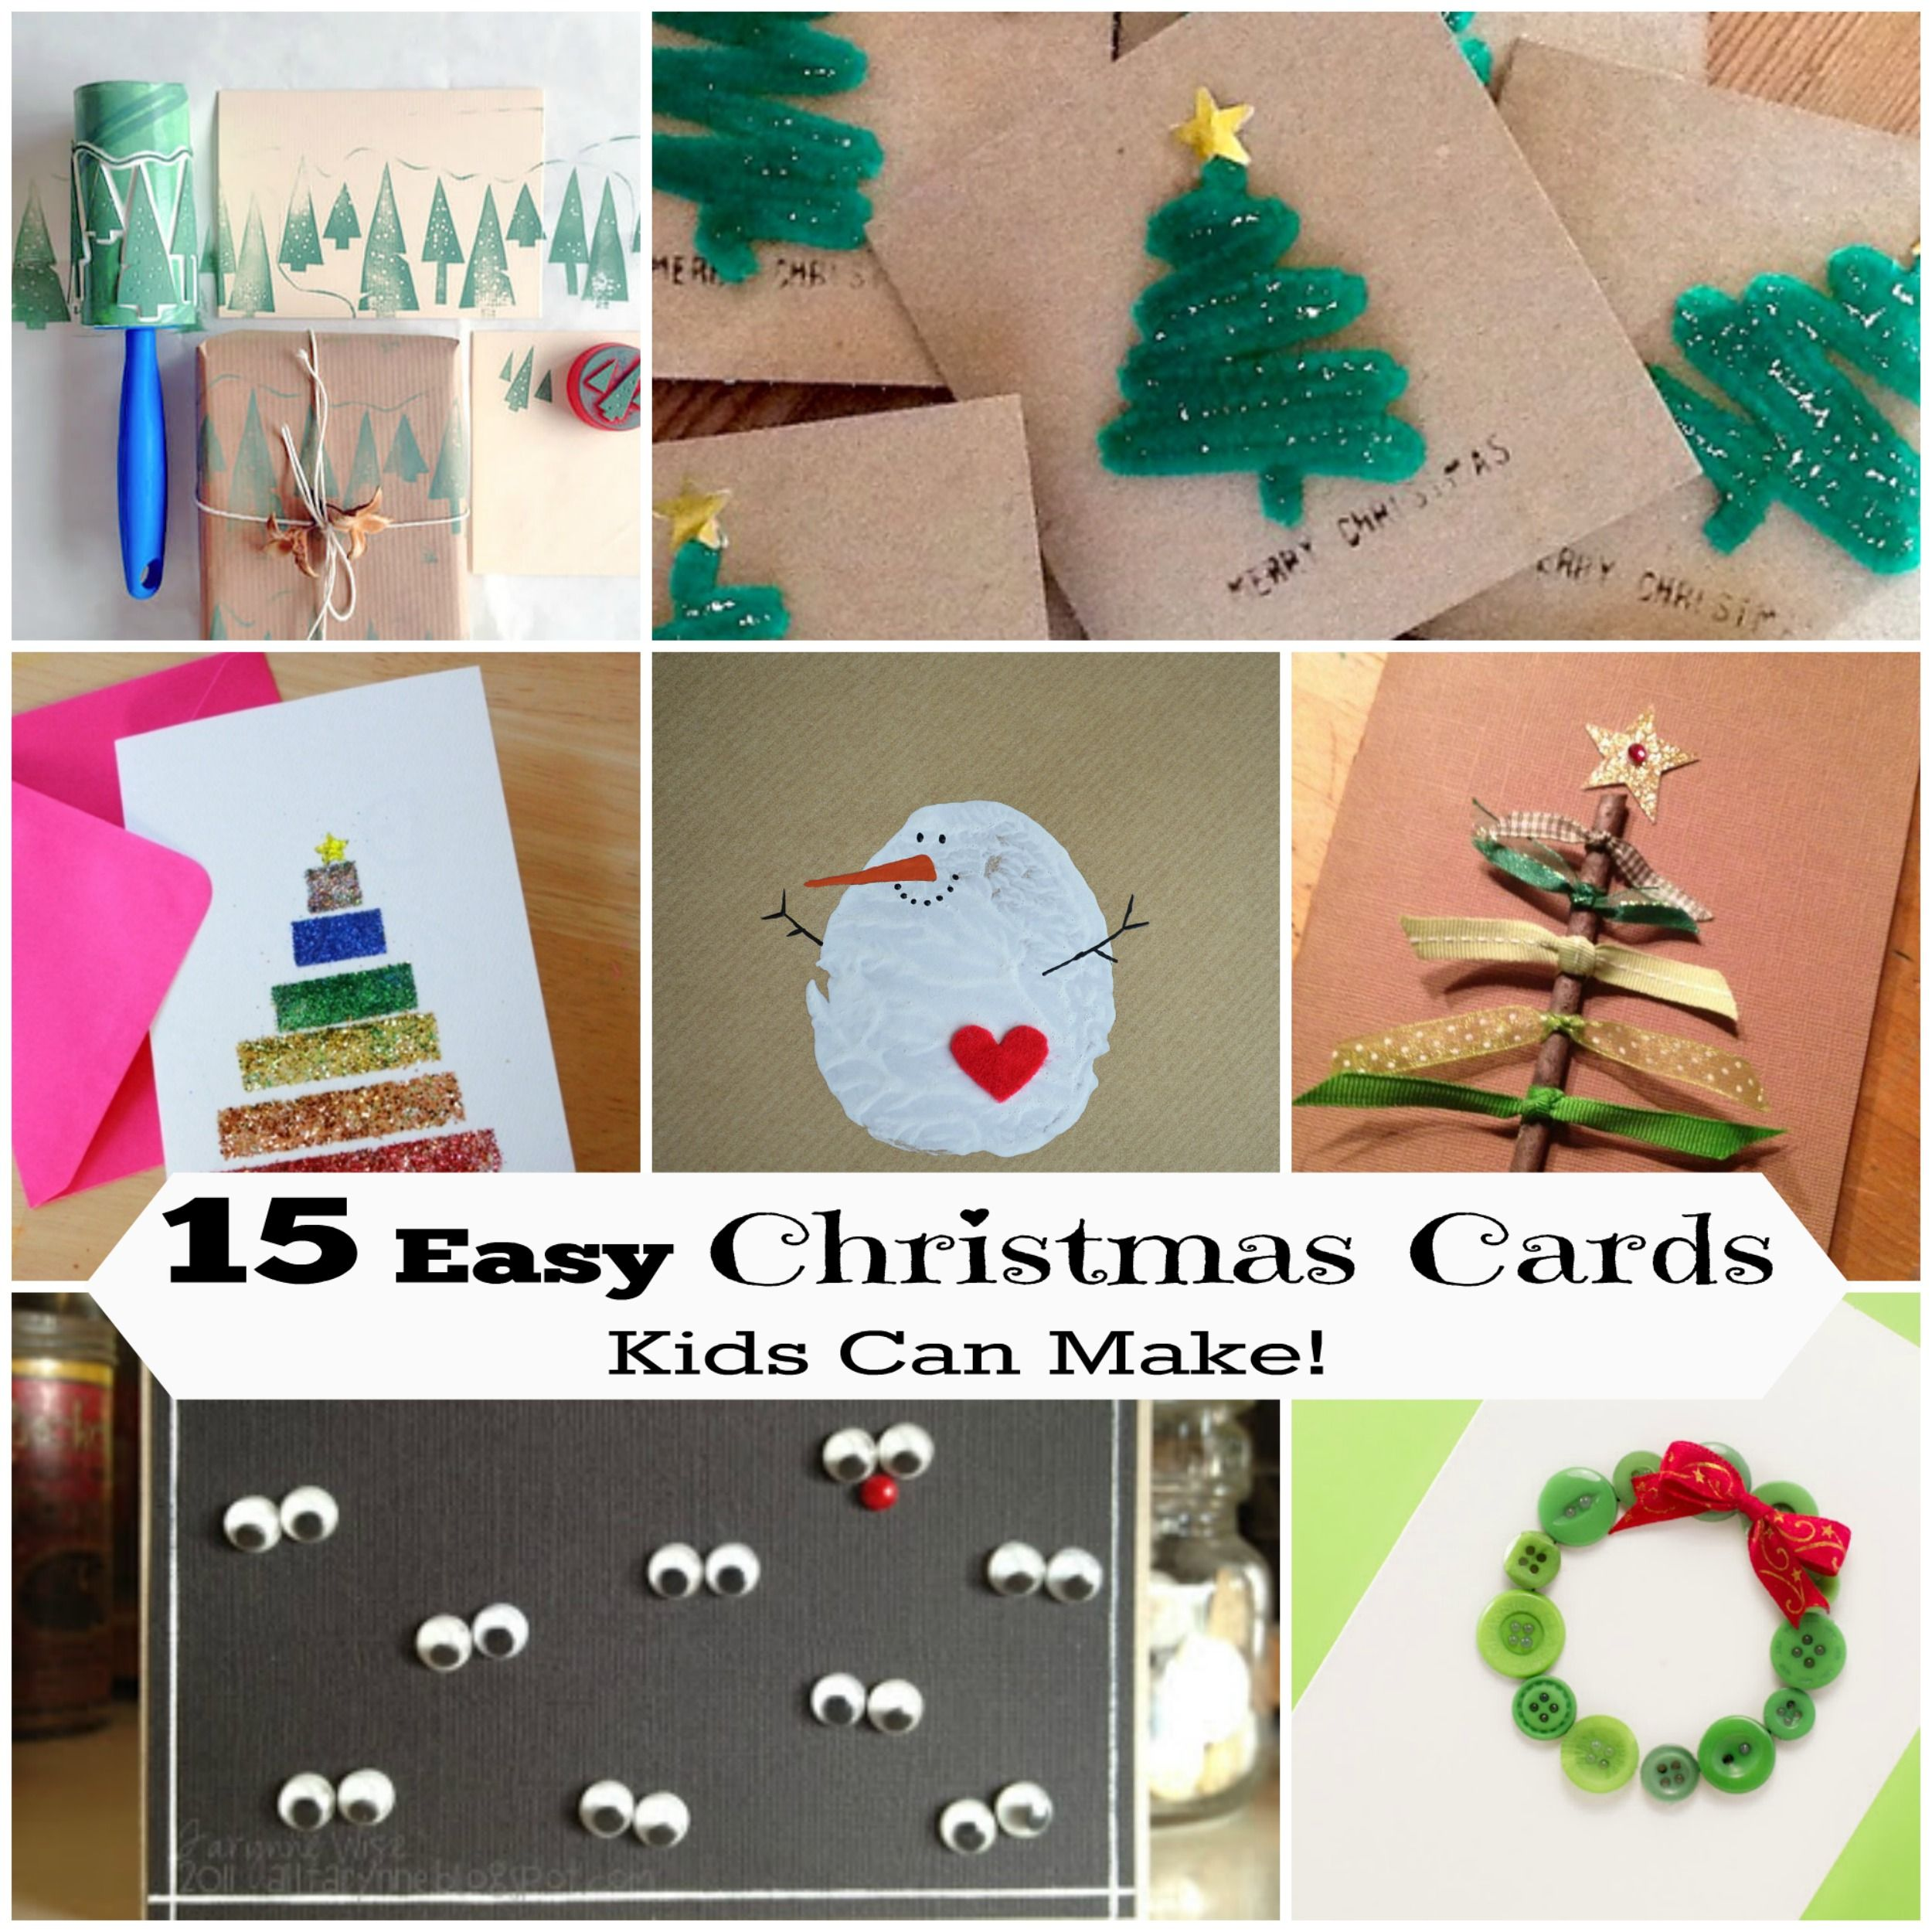 Homemade Christmas Card Ideas For Kids To Make Part - 42: 15 DIY Christmas Cards Kids Can Make